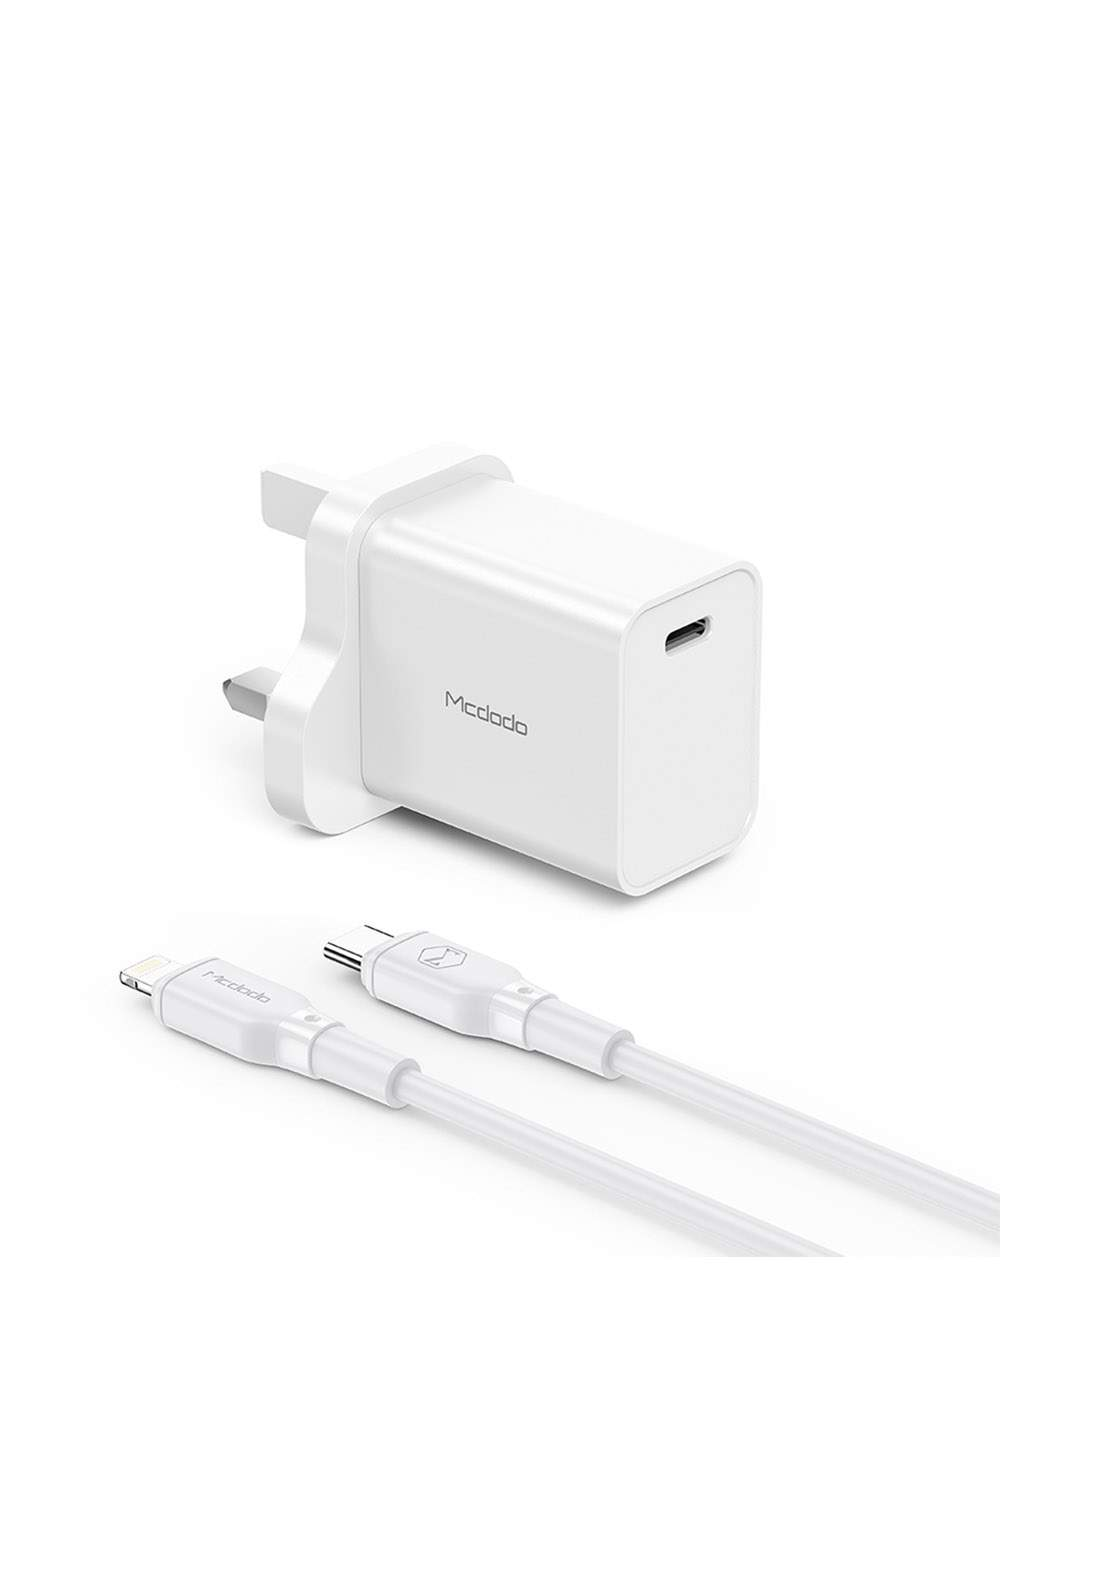 (3828)Mcdodo CH07571 PD Wall Charger with Cable 20W - White شاحن